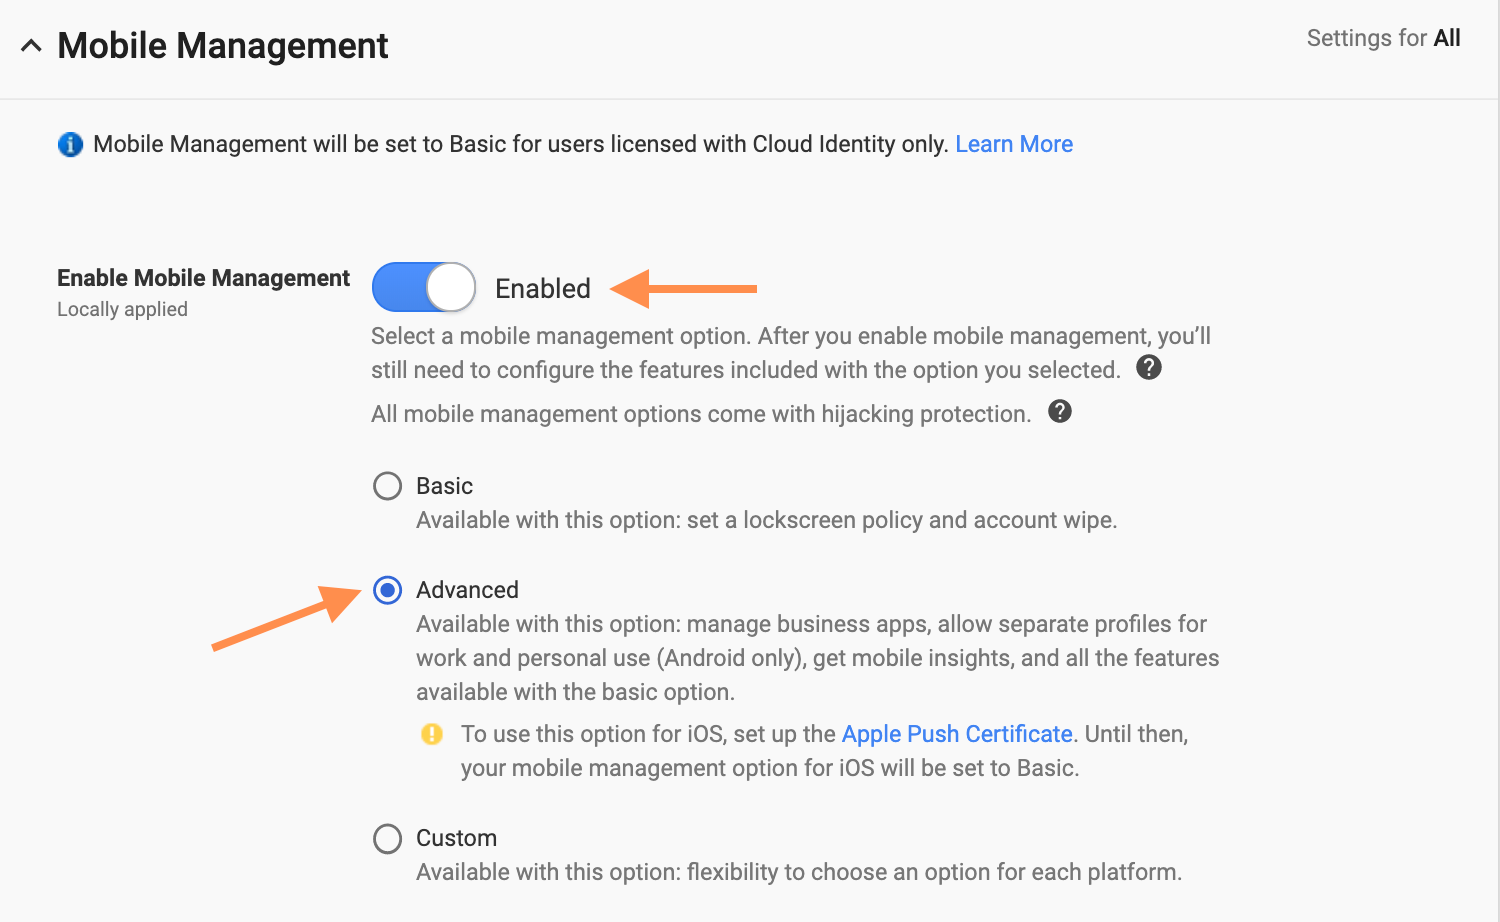 G Suite Mobile Management Settings